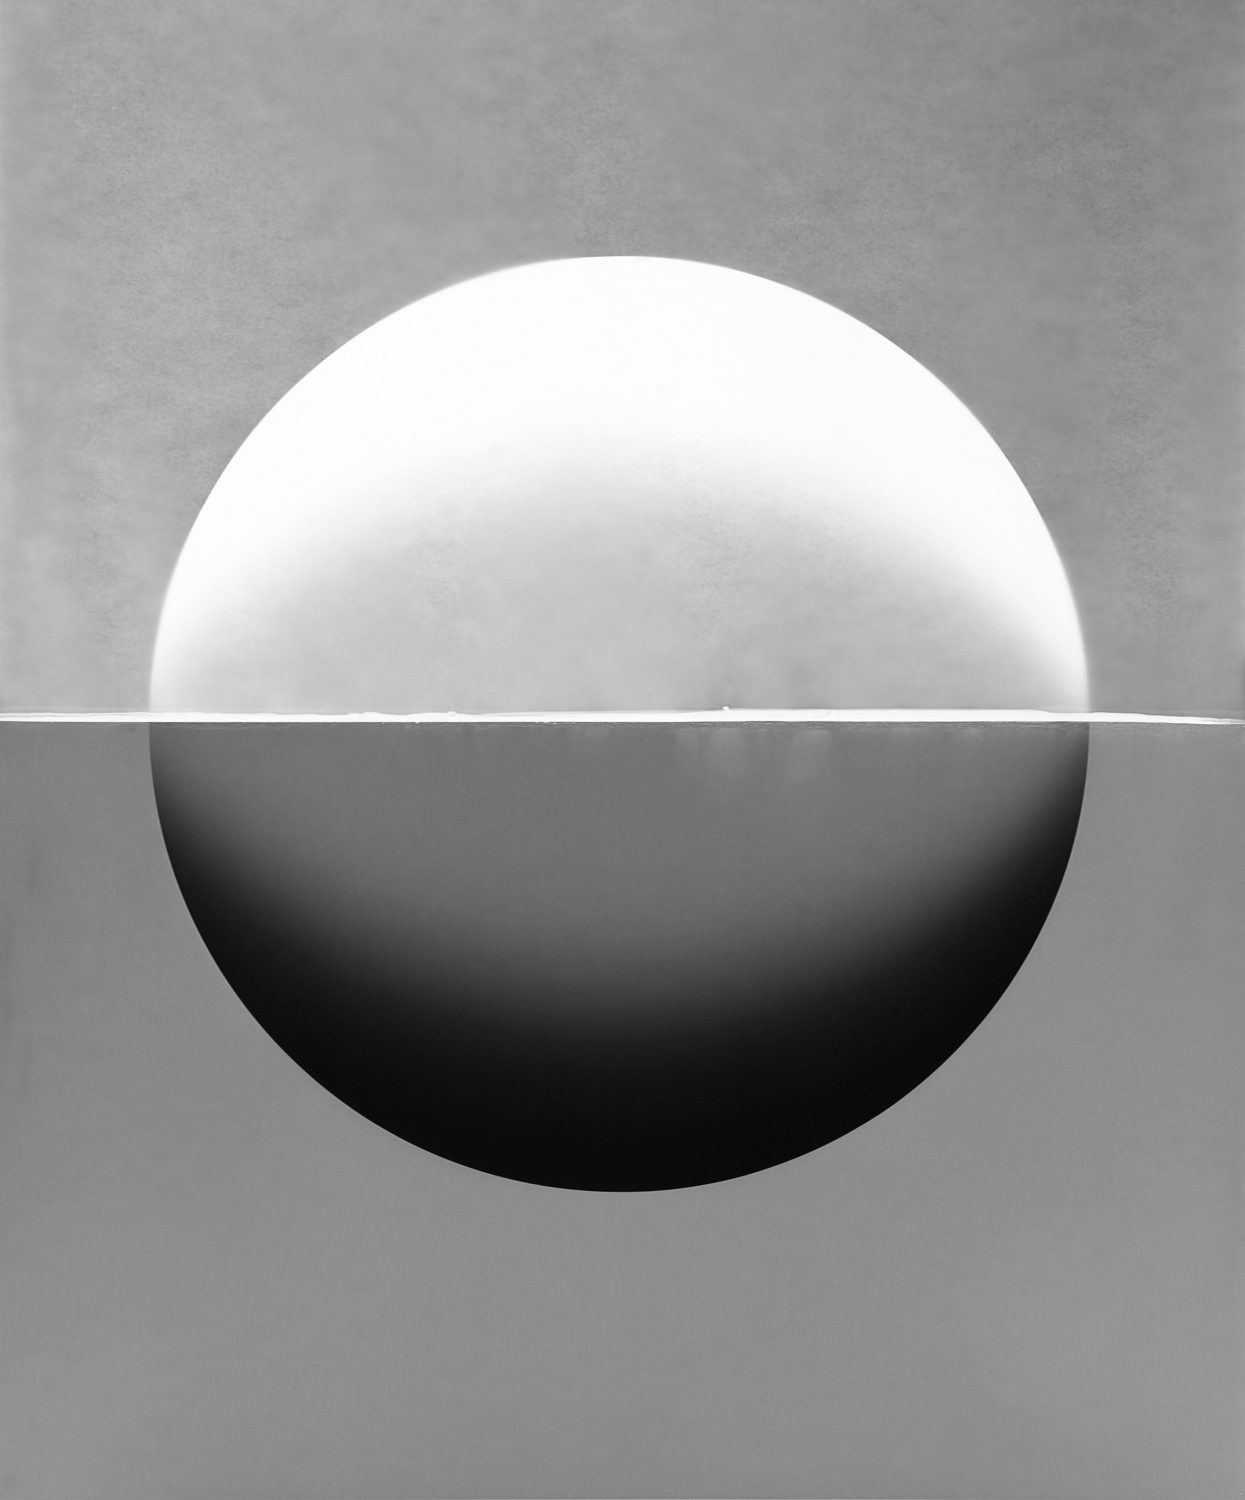 Image above: ©Caleb Charland, Double Index with Sphere #2402, 2016, Photogram on gelatin sulver paper / Courtesy of Sasha Wolf Gallery